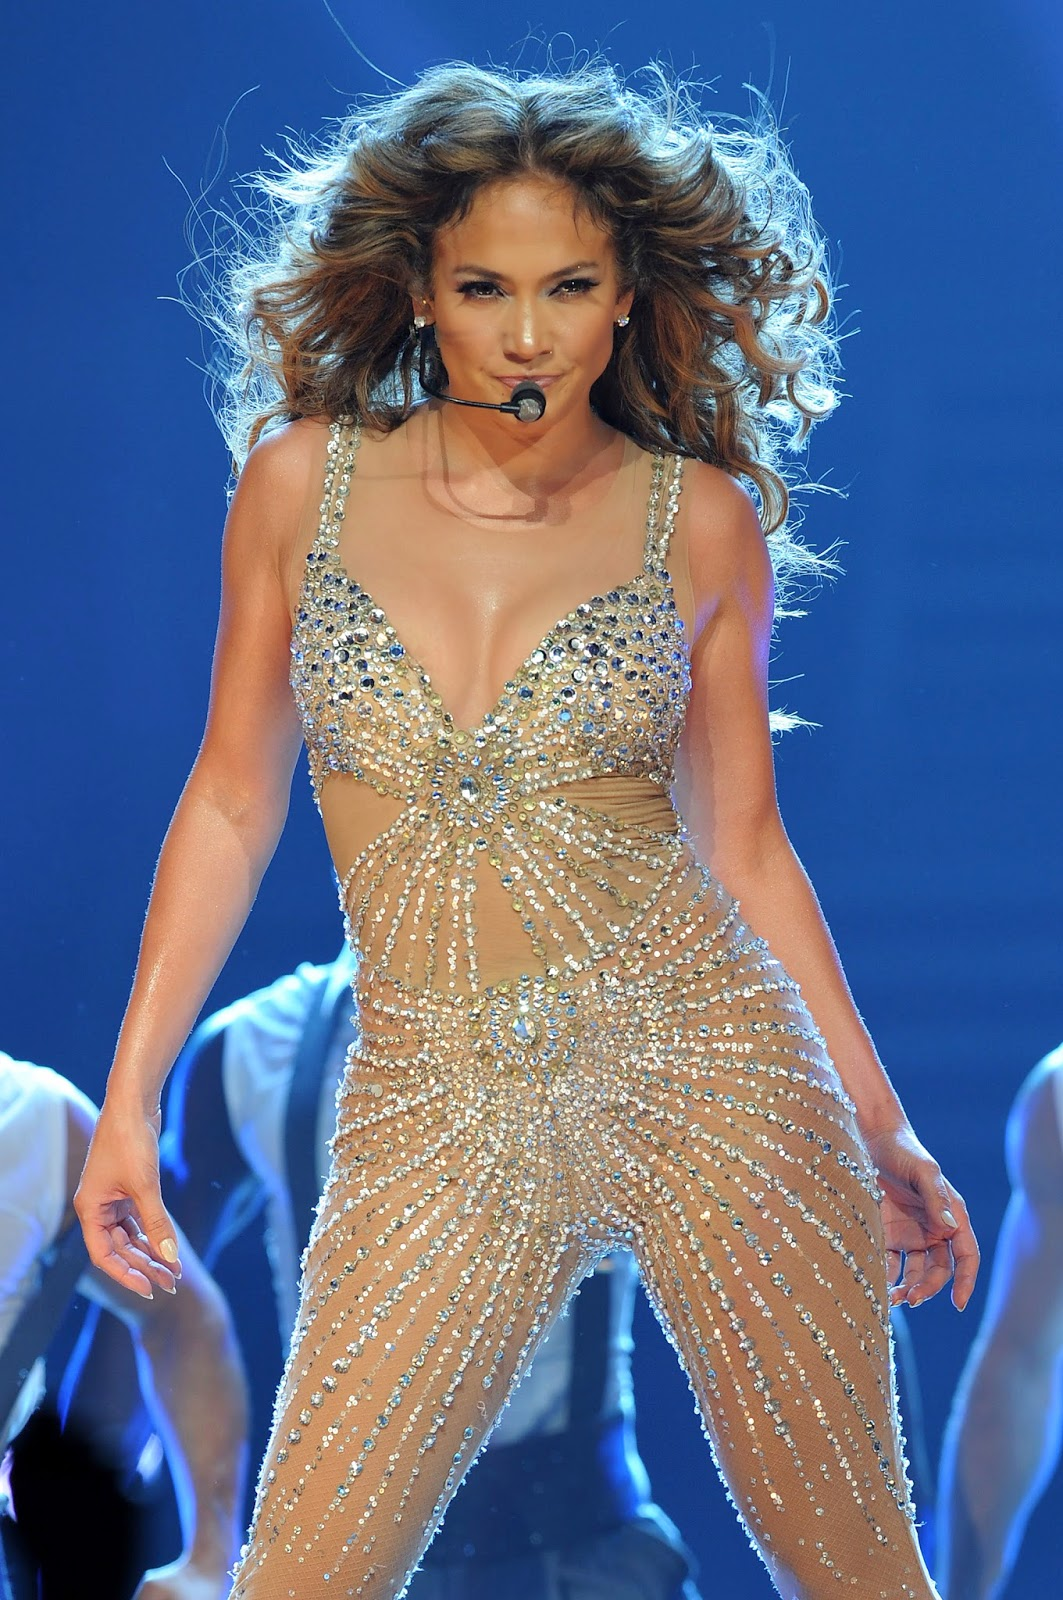 Jennifer Lopez is one of the leading singers in this modern. Here is a style of singing of Jennifer Lopez.